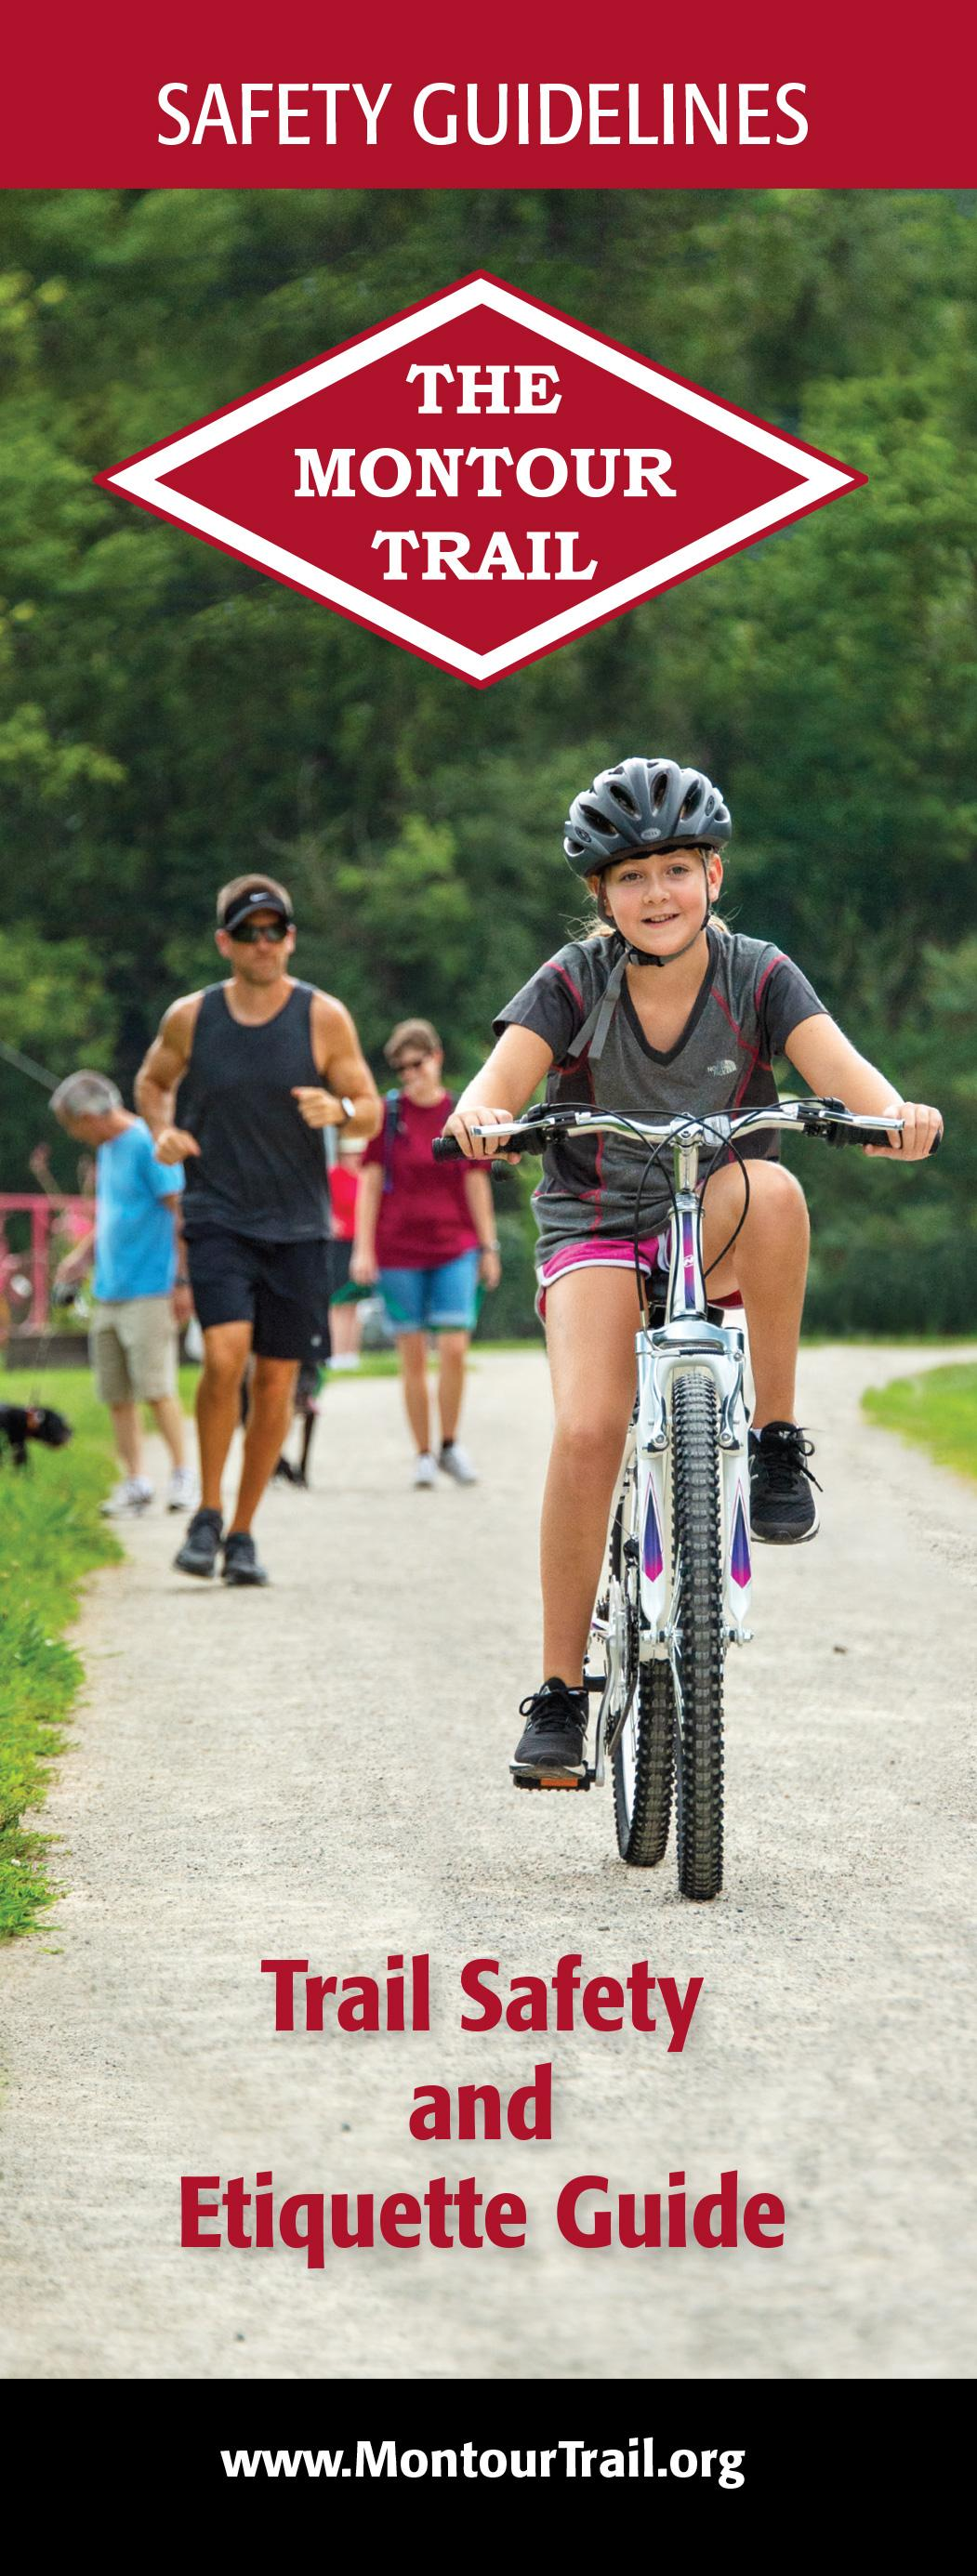 The Montour Trail Safety and Etiquette Guide is available at trailheads and access areas.